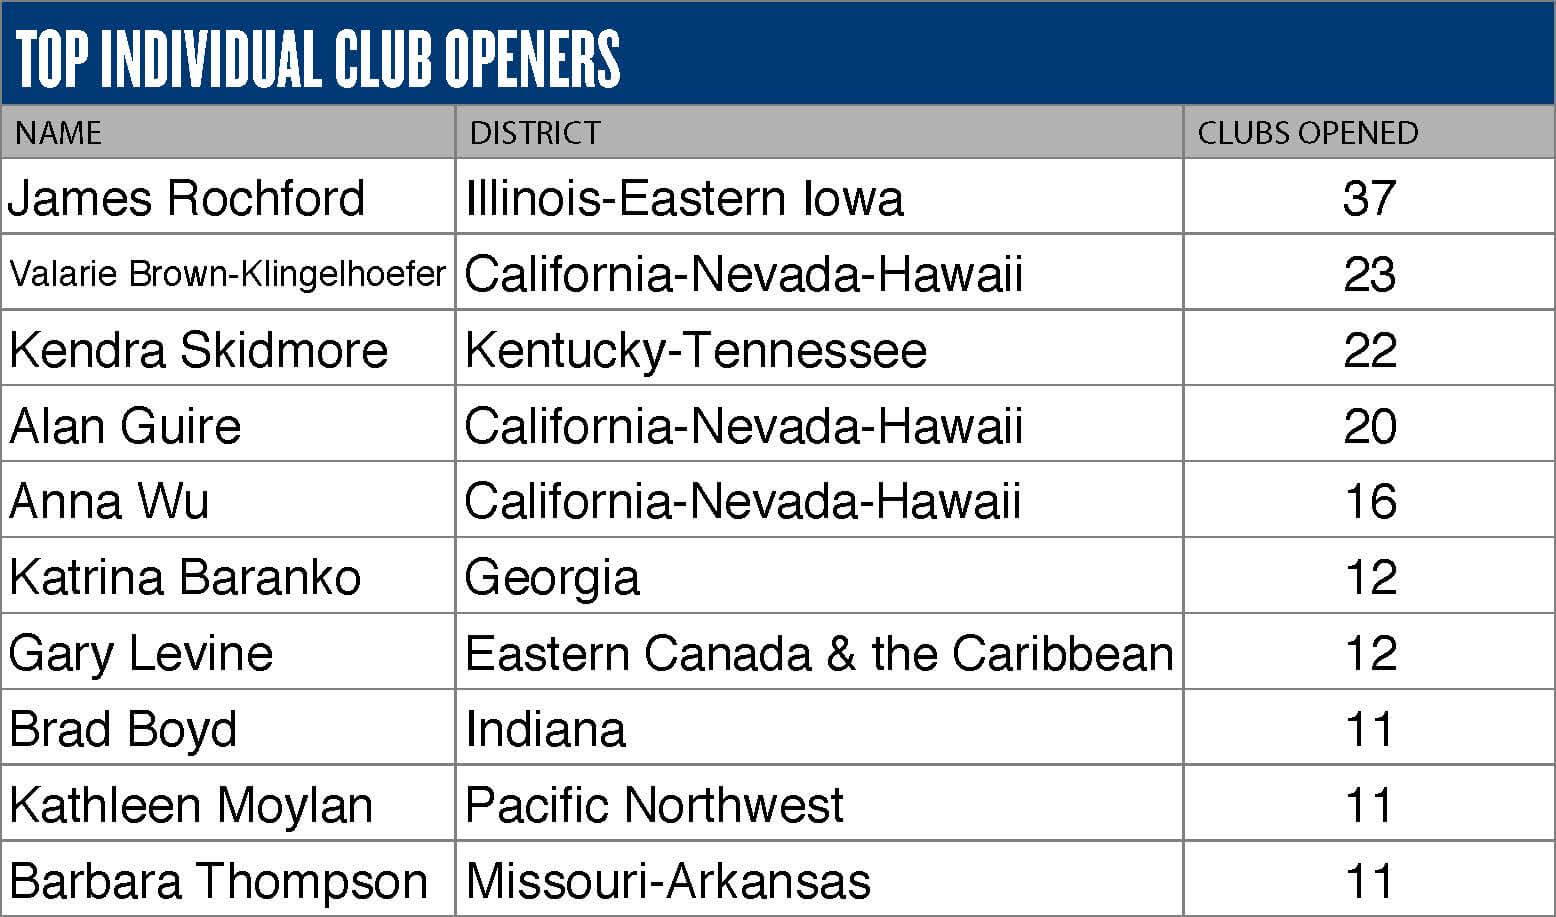 Top individual club openers